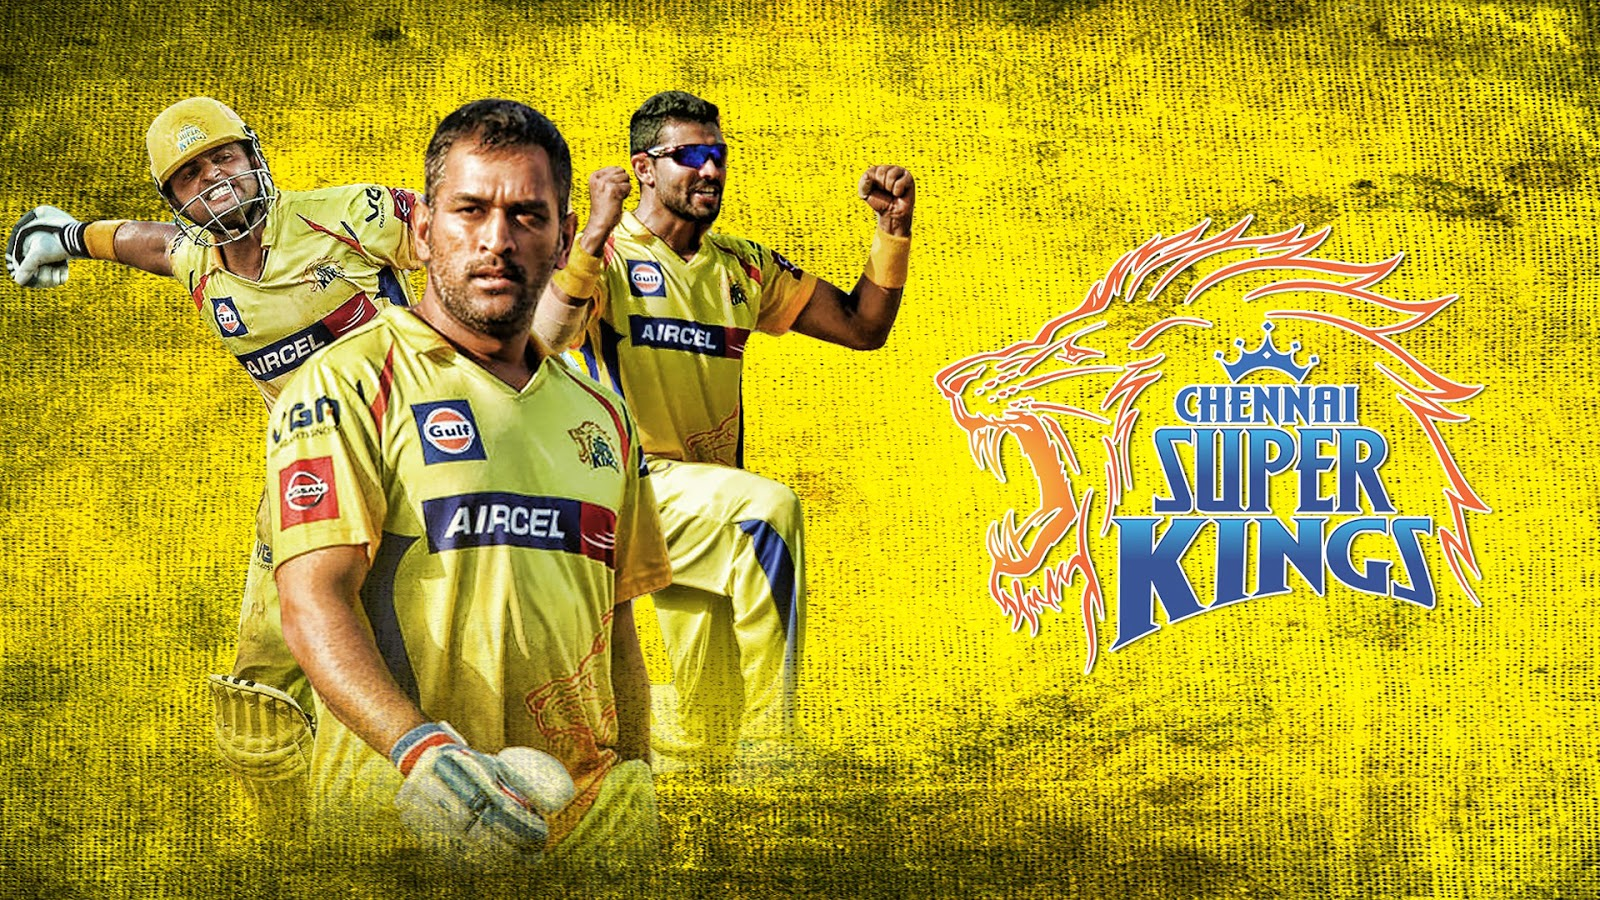 Chennai+Super+Kings+HD+Wallpapers+Free+Download.jpg (1600